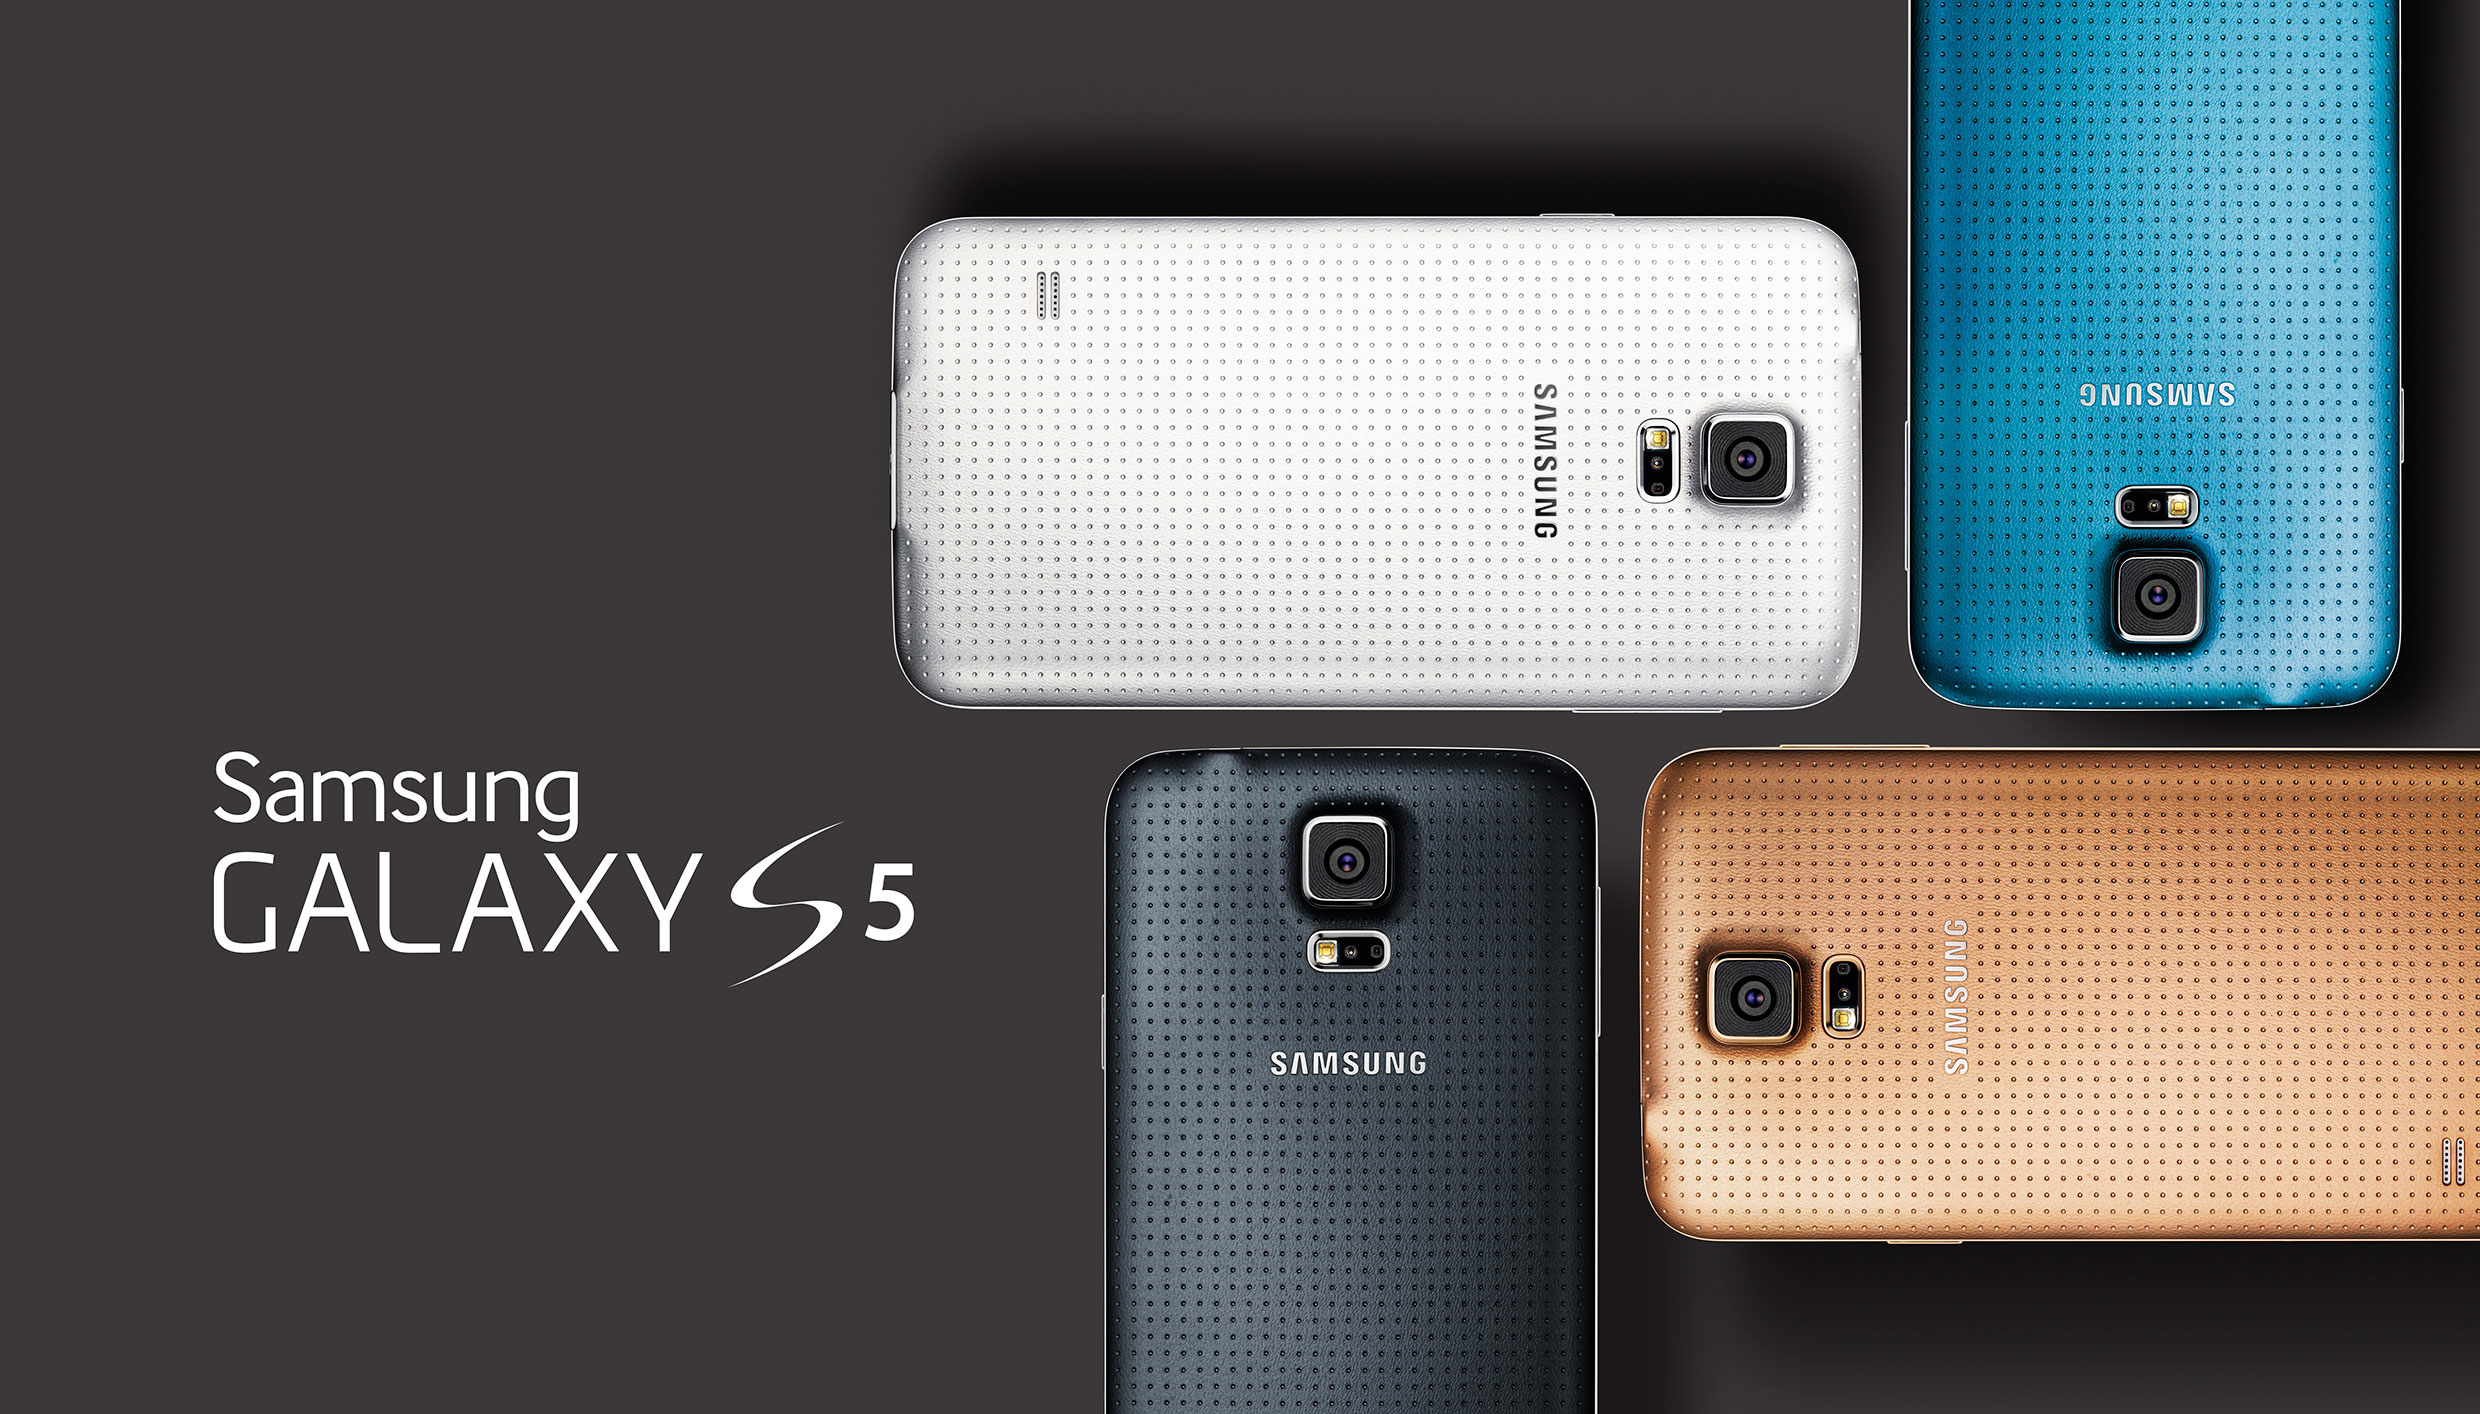 ... to choose from on the Samsung Galaxy S5 as well as the Sony Xperia Z3